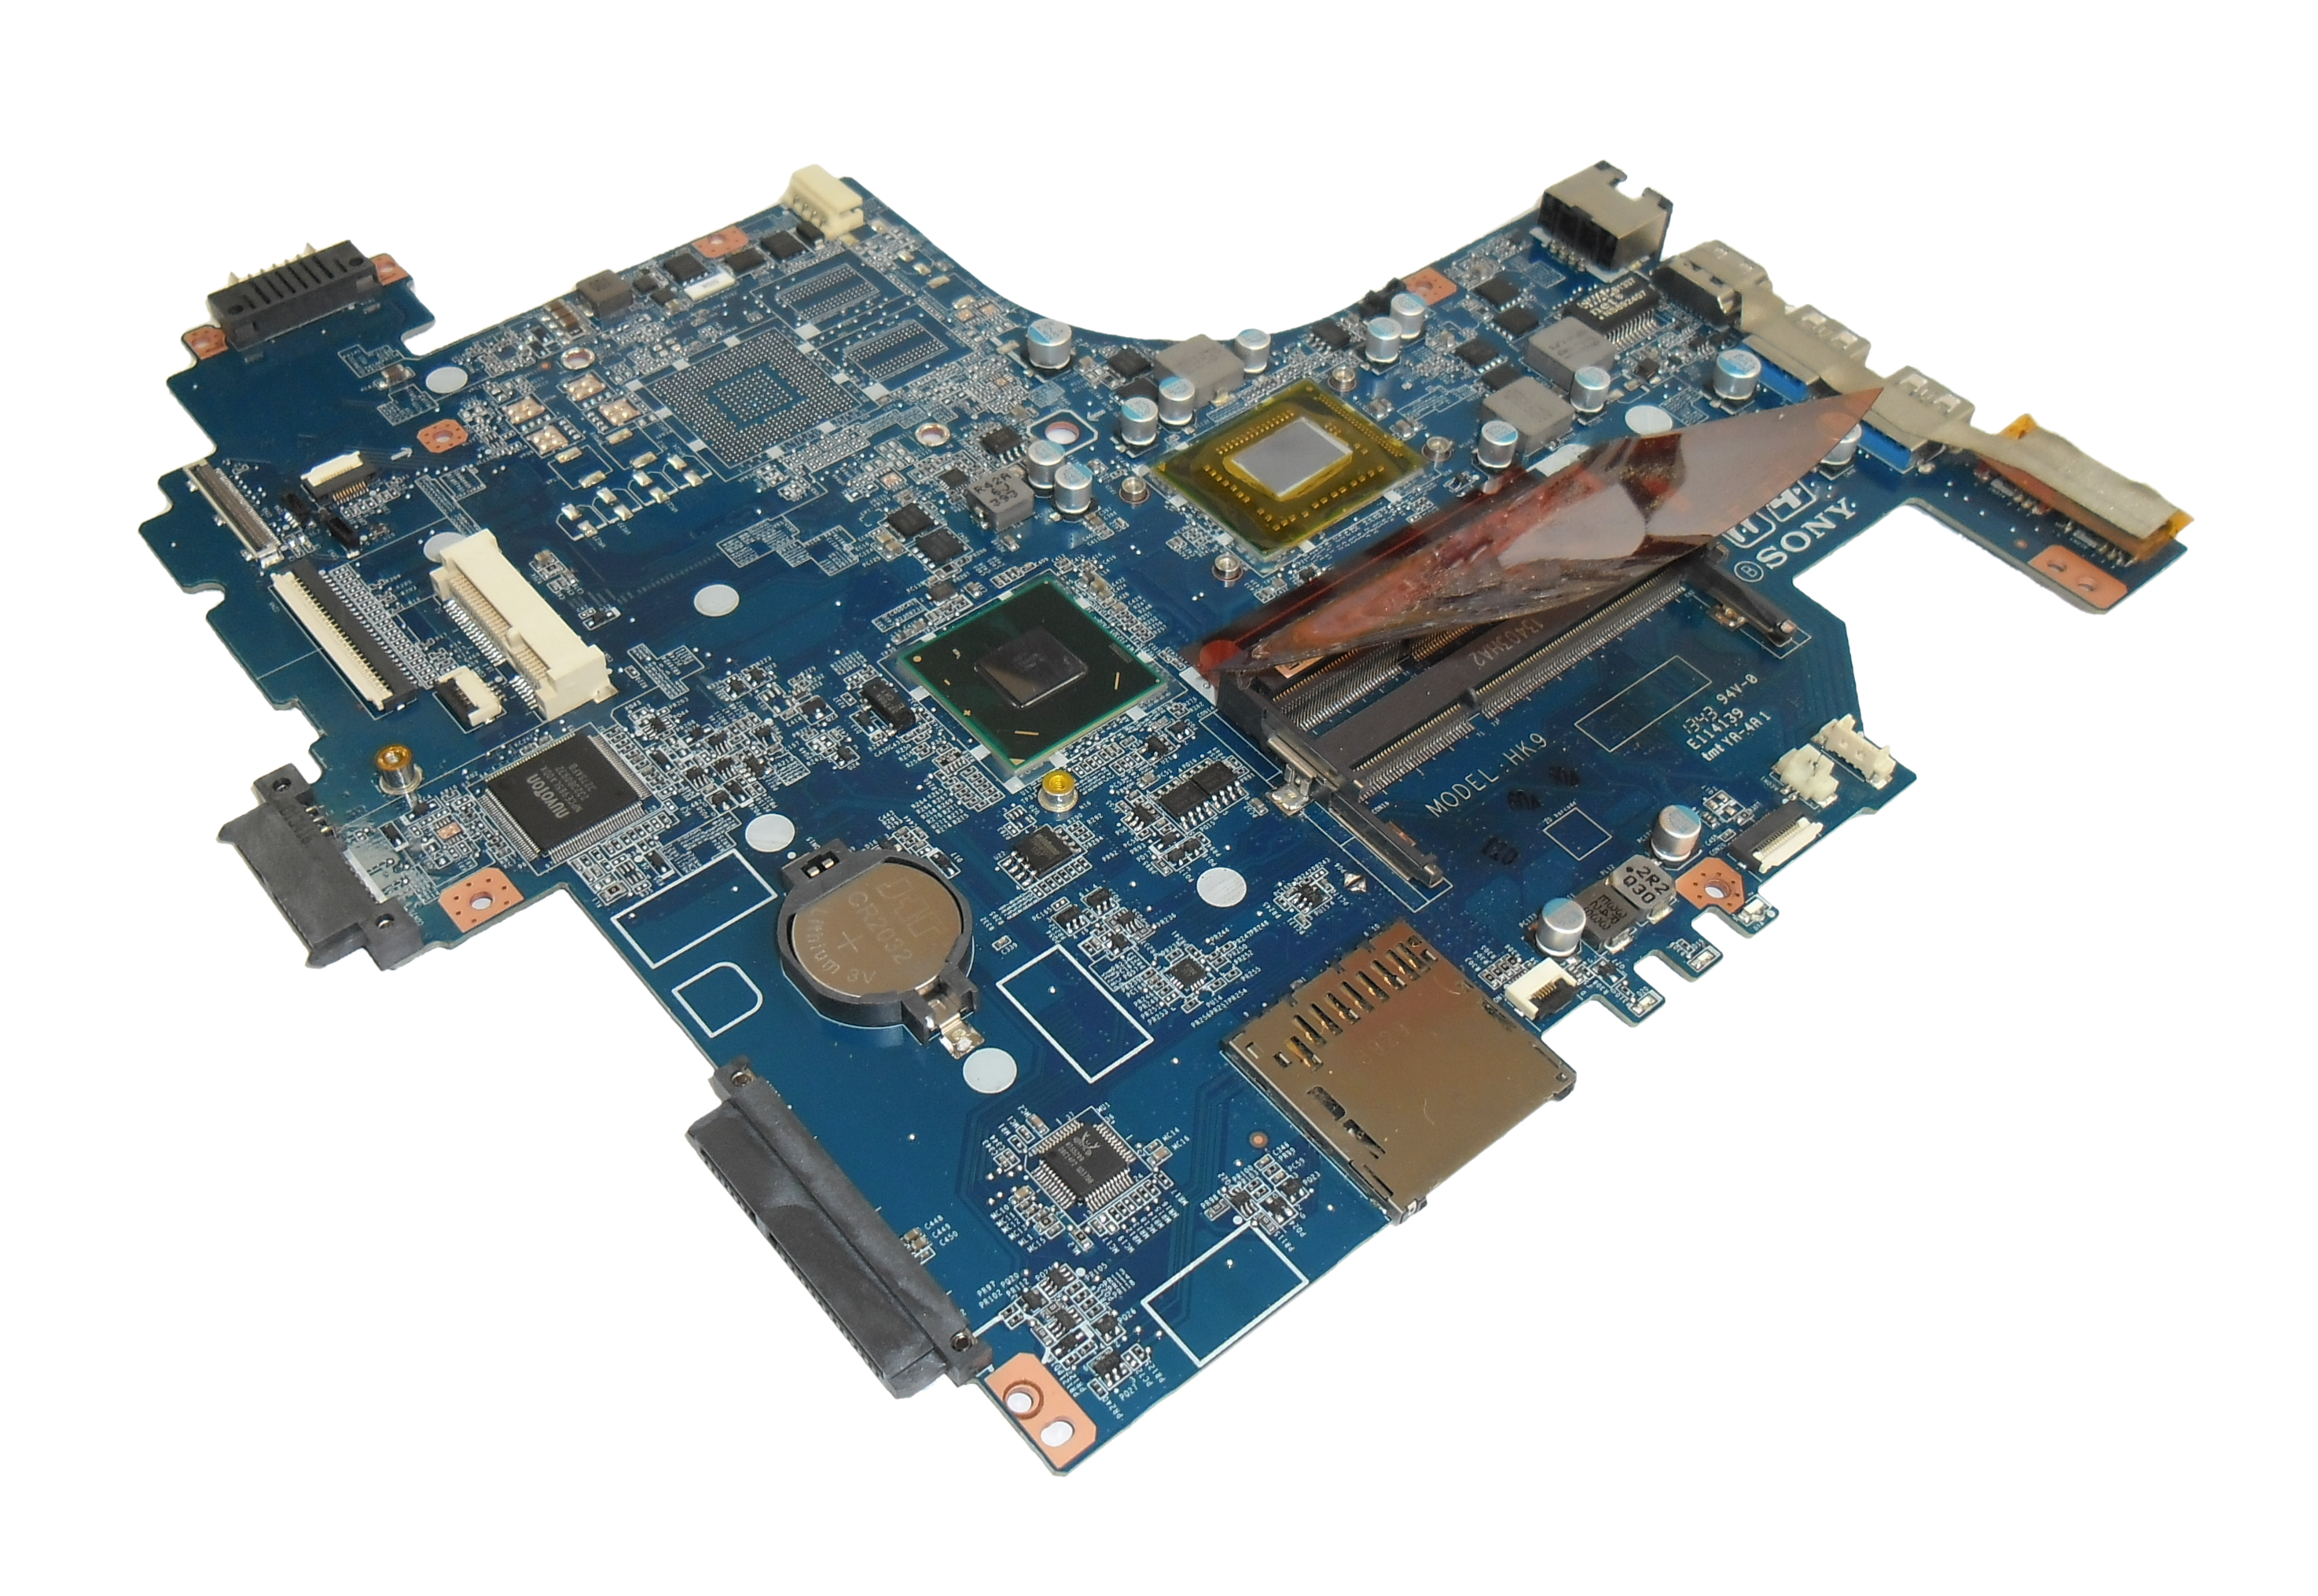 31HK9MB00W0 Sony Vaio SVF1521A2EB Motherboard with Intel SR0V4 Processor